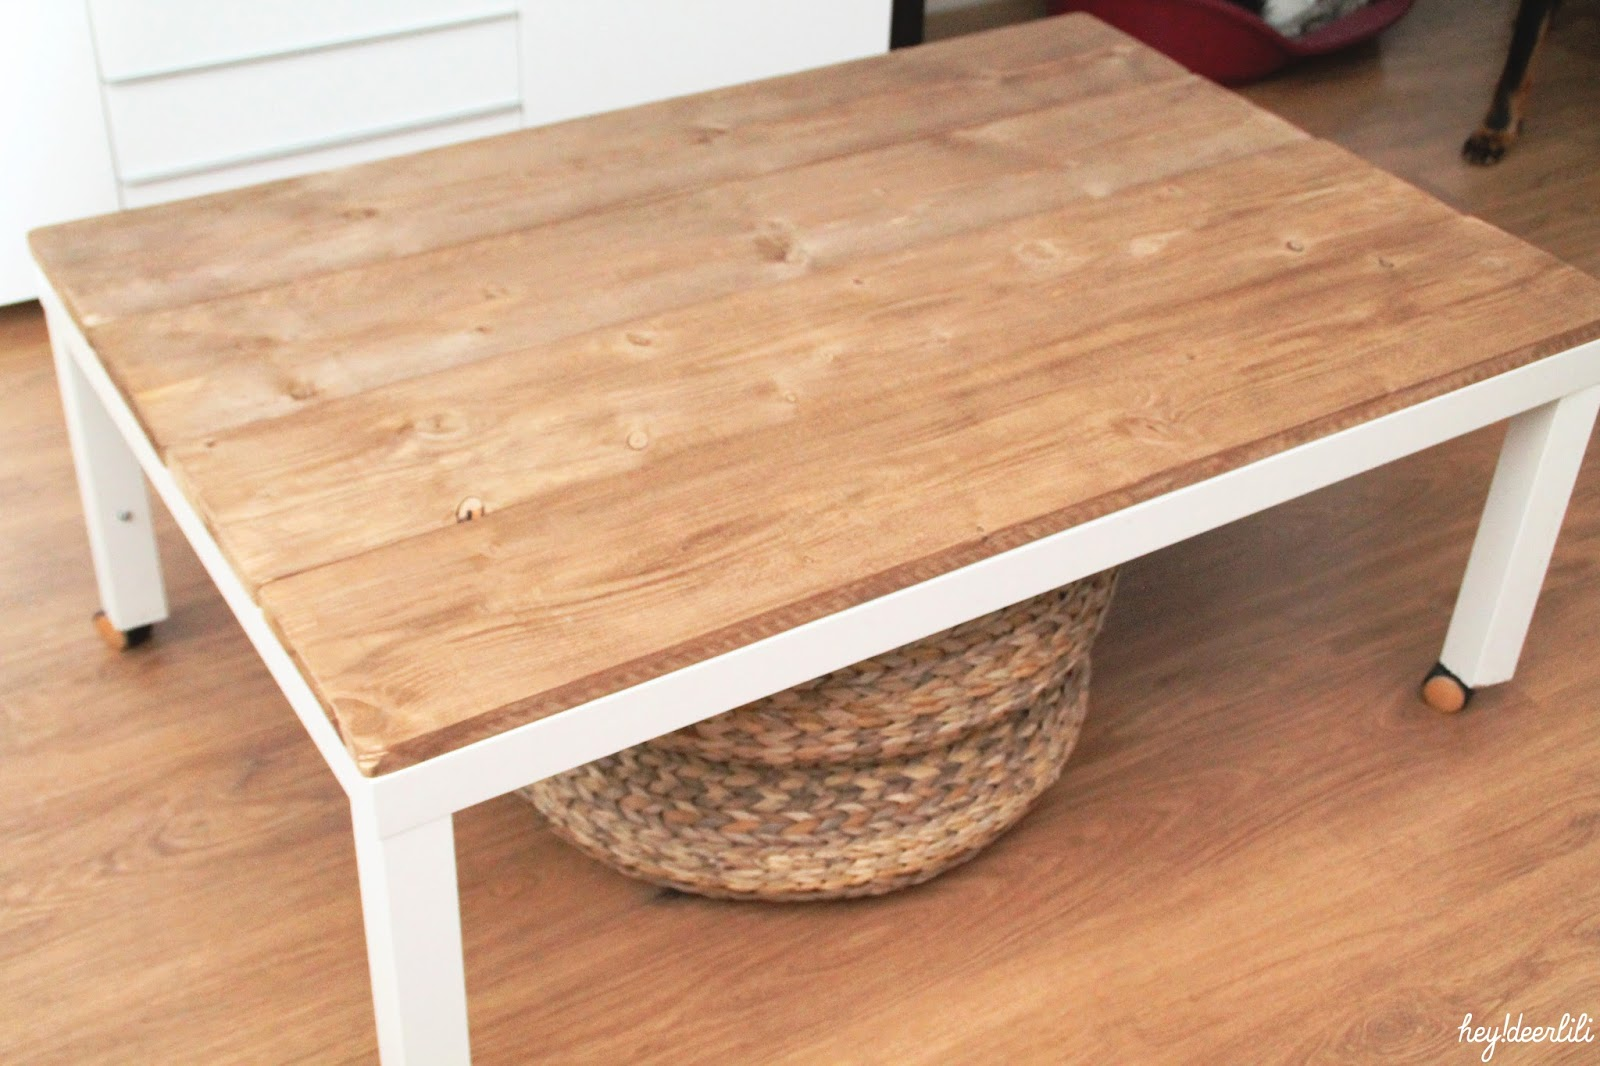 Customiser une table basse ikea - Table carree ikea ...